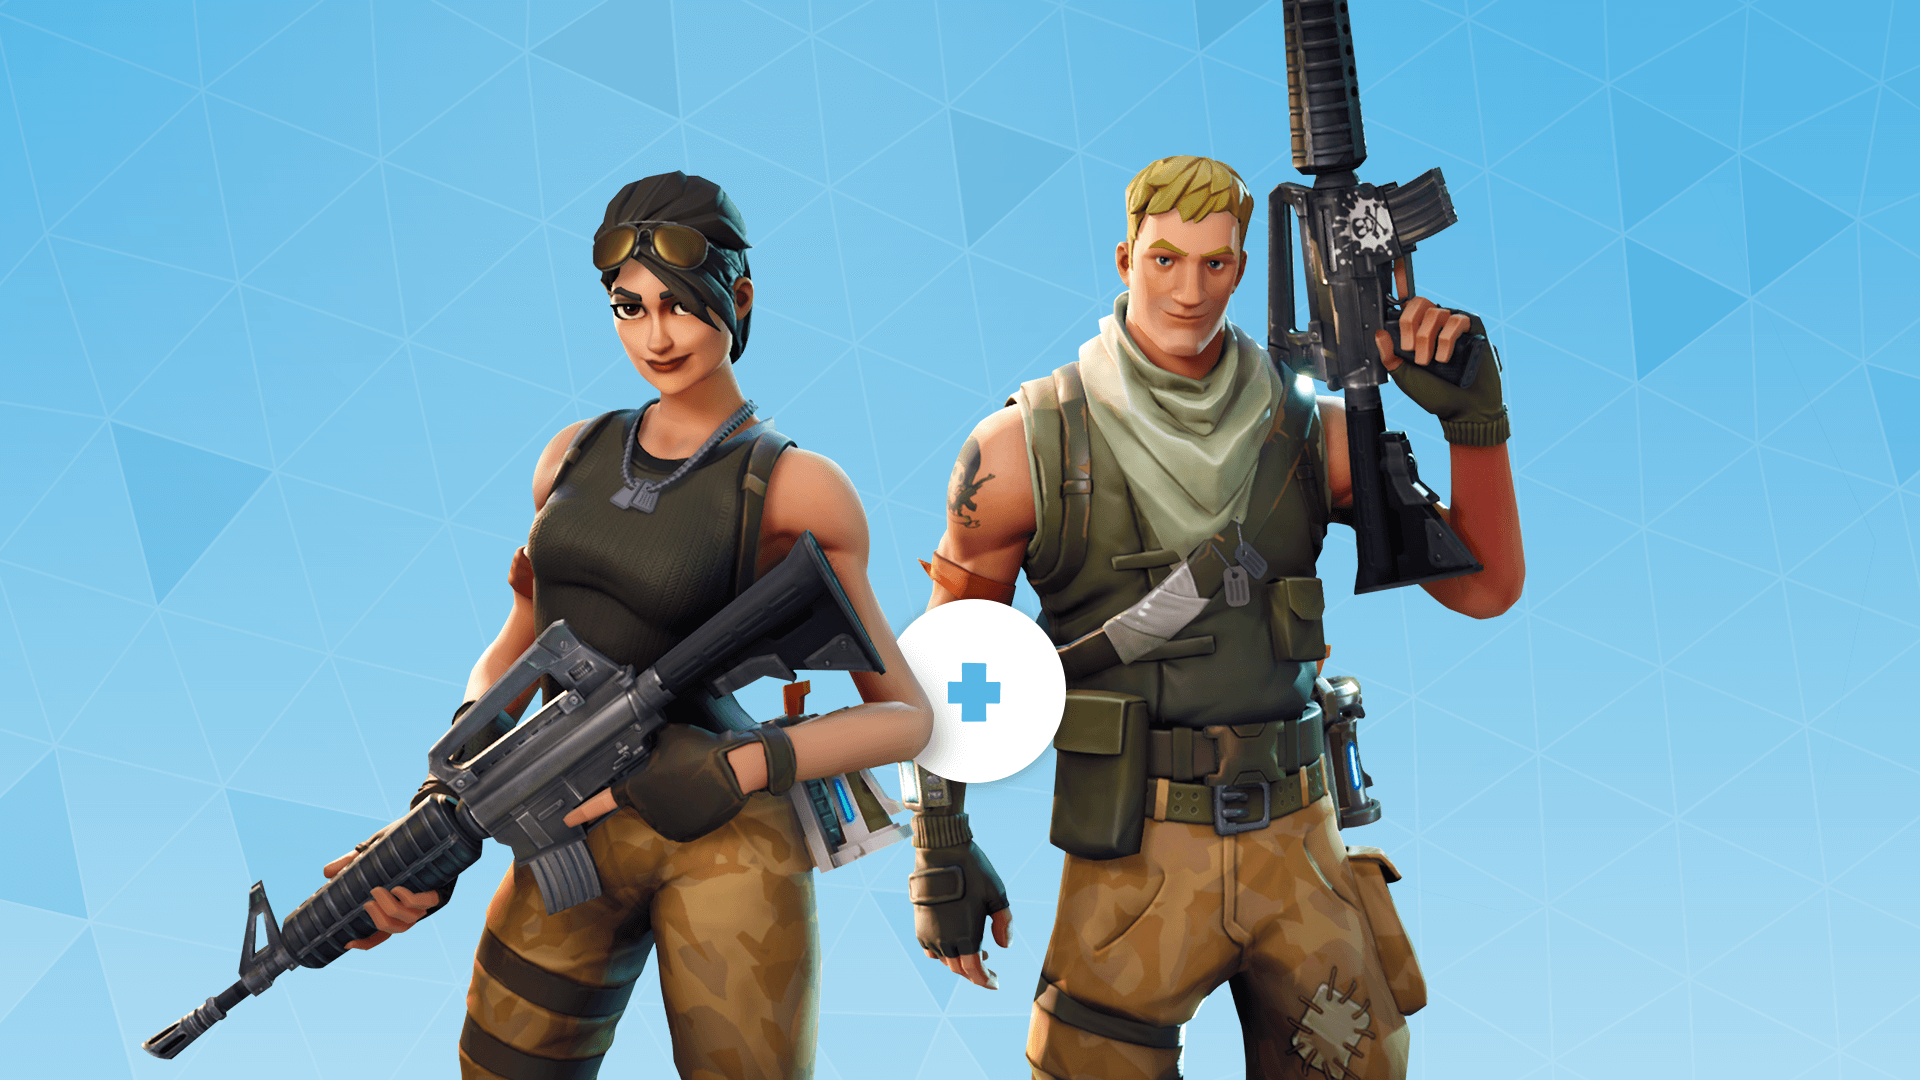 Fortnite Update Adds Launch Pad Trap Improves Performance More